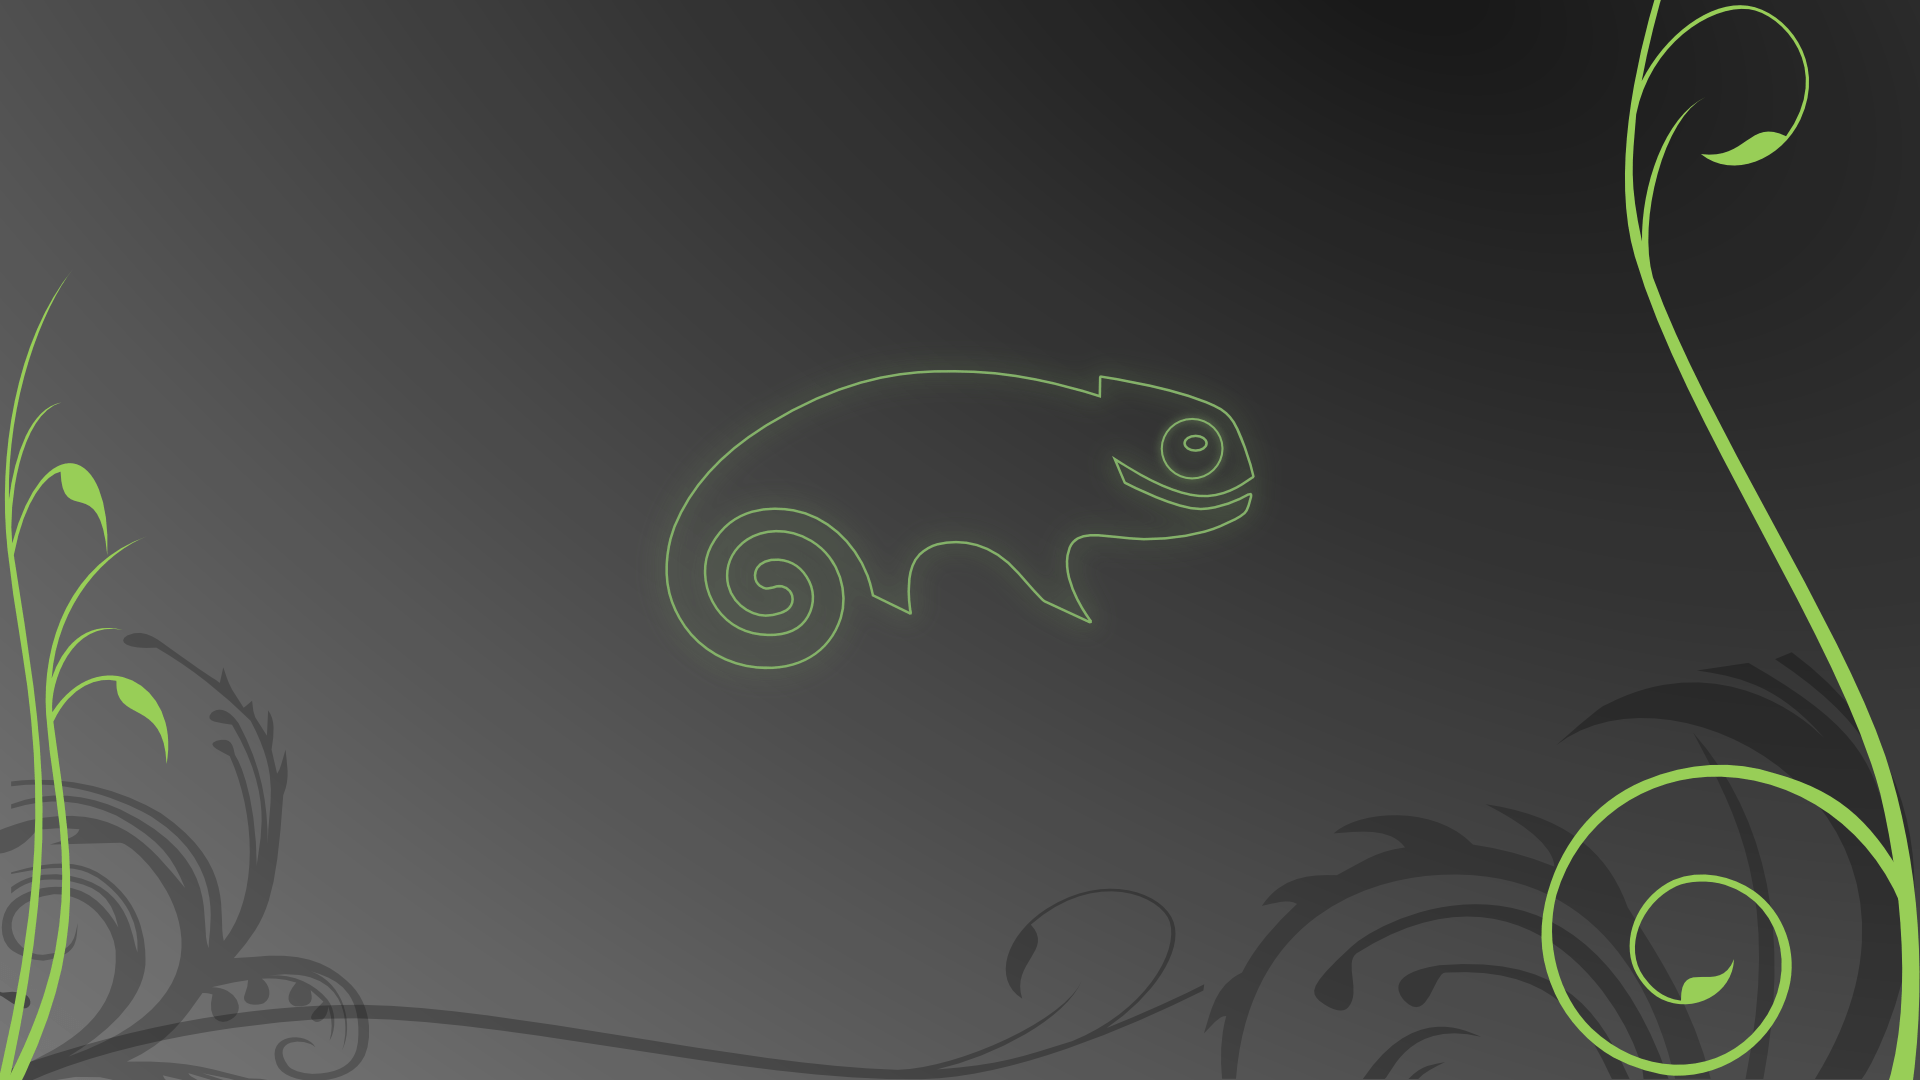 1920x1080 Free download OpenSuse Wallpapers [1920x1080] for your Desktop ...